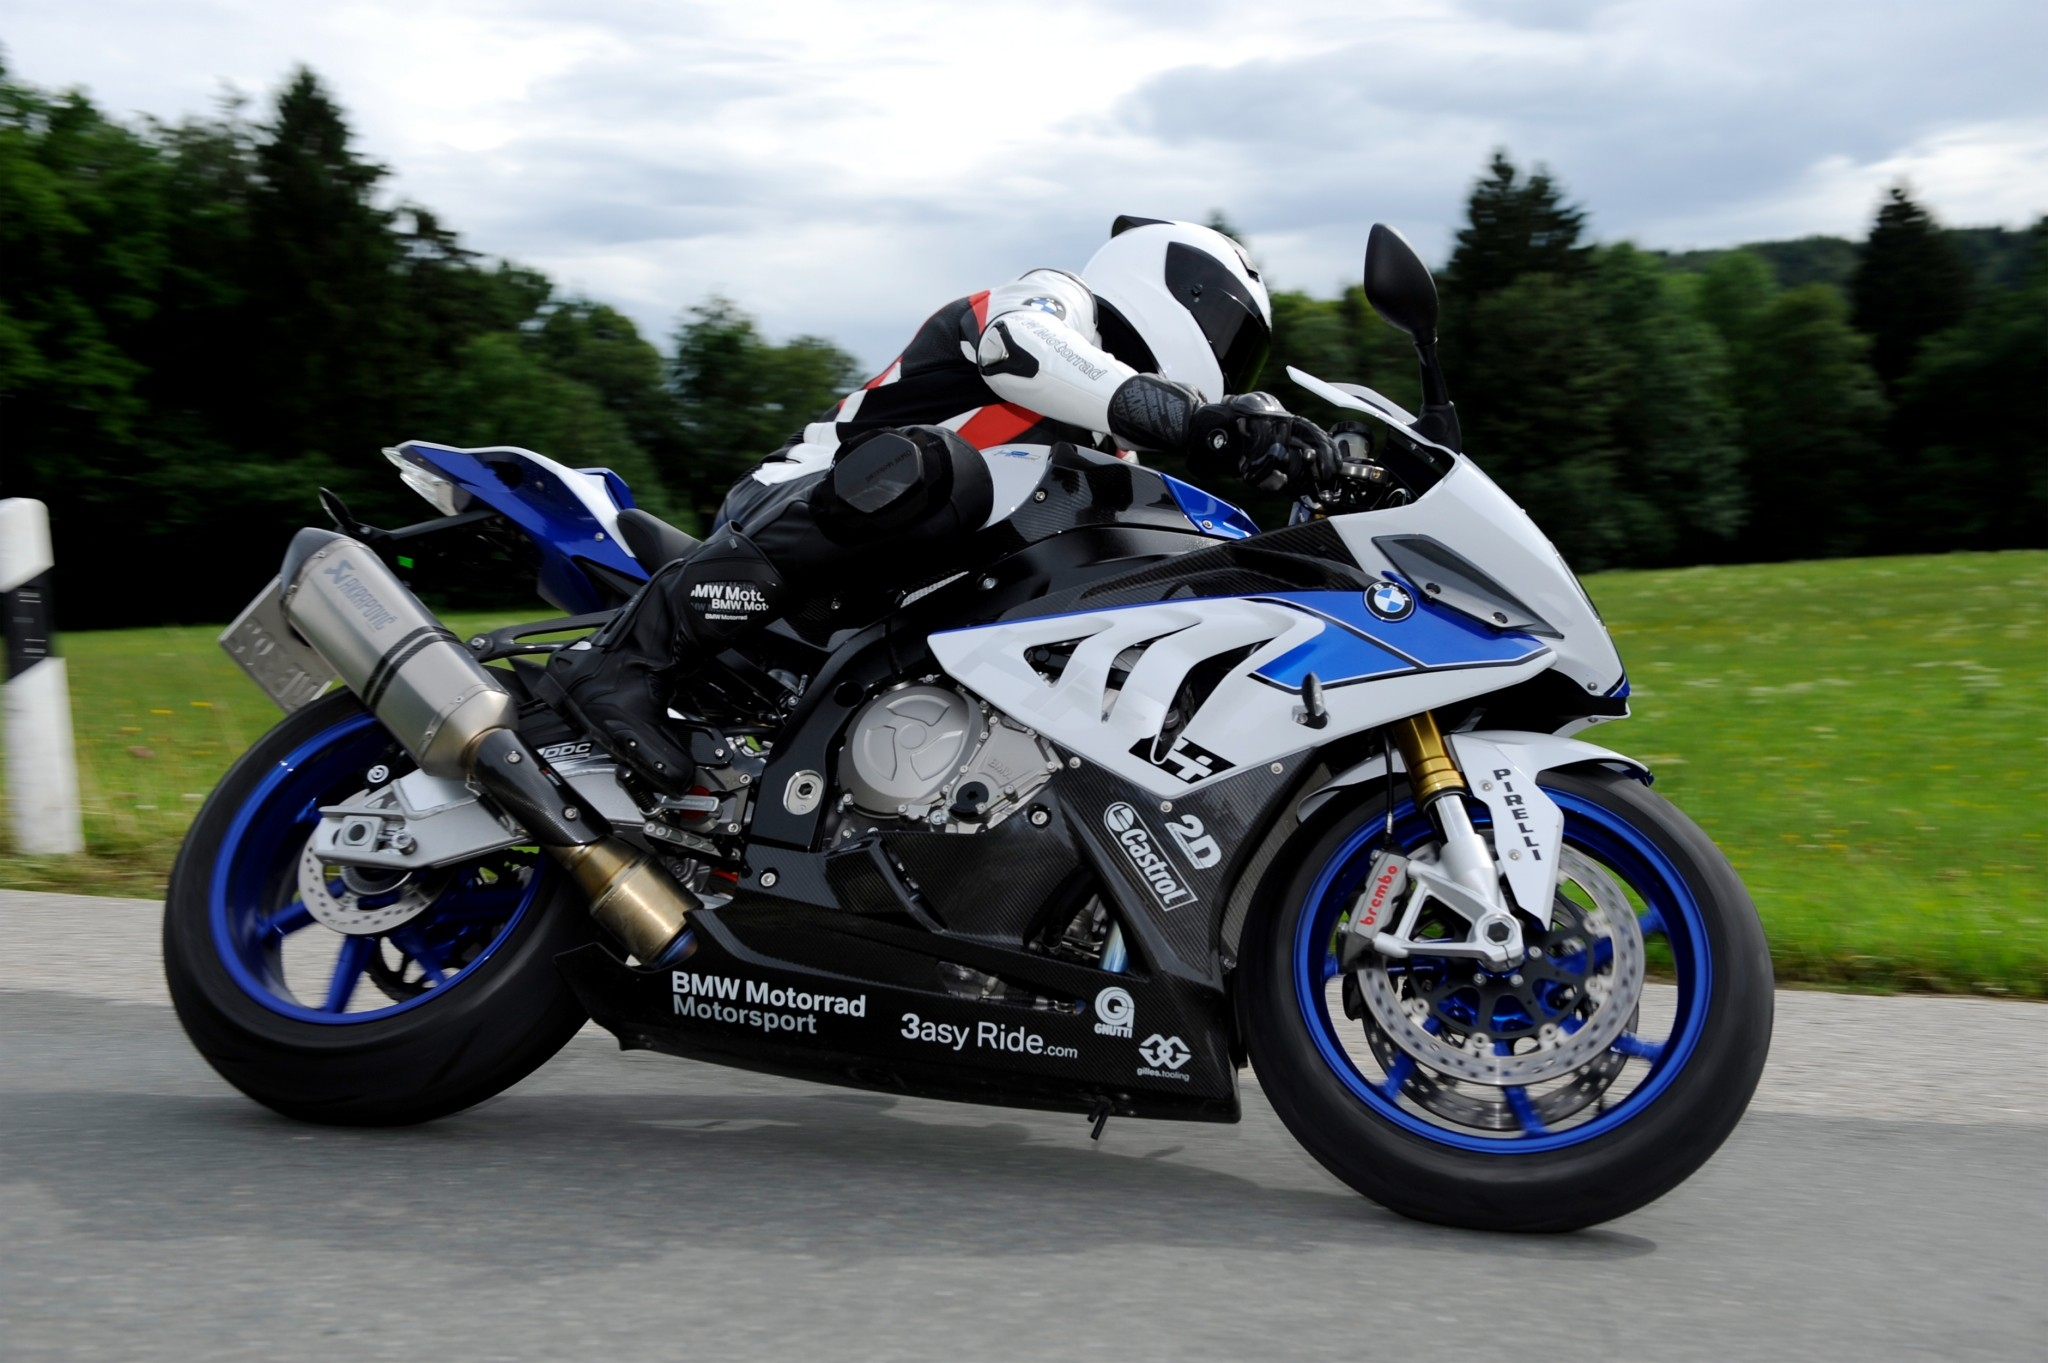 Motorcycles Bikers And More: BMW Announces US Motorcycle Prices, Ditches The HP4 And